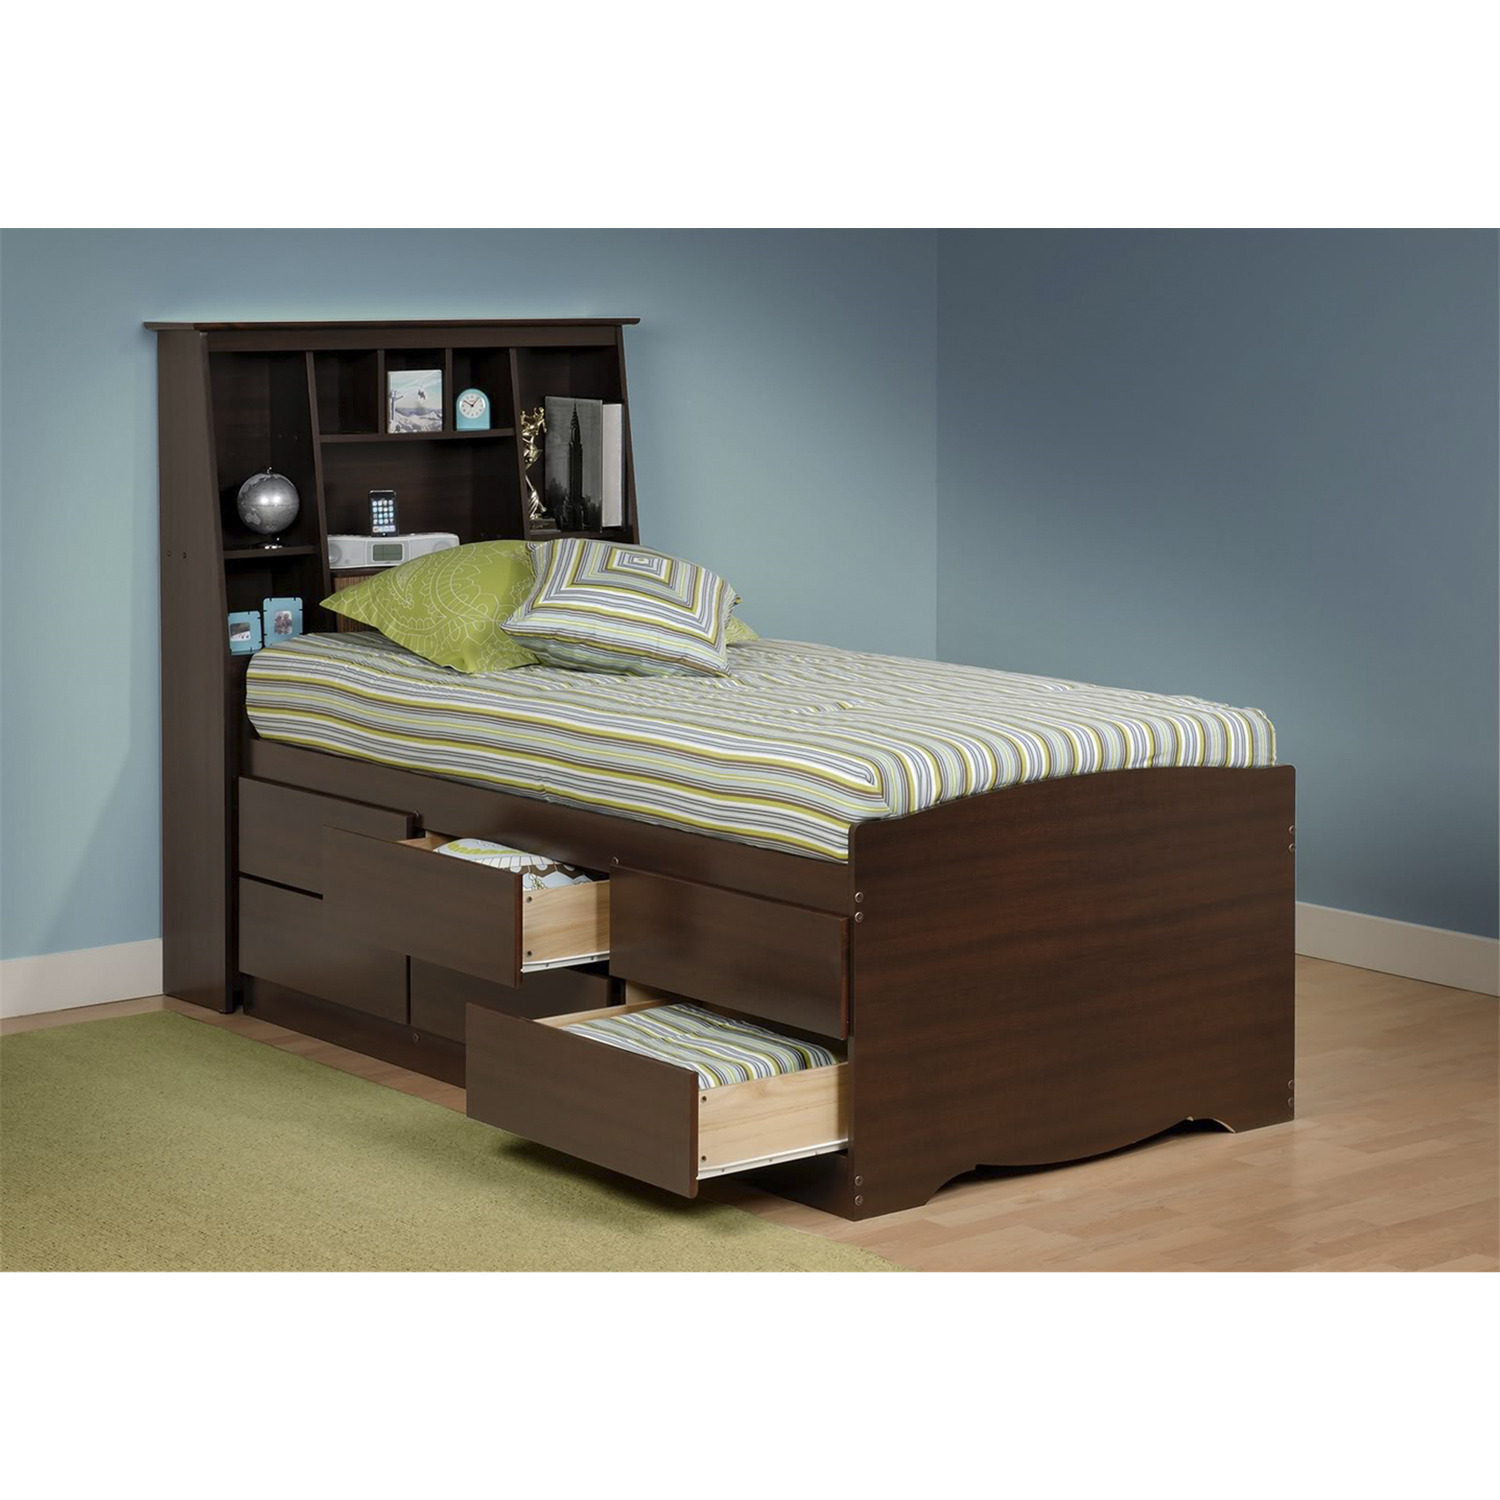 Tall captain 39 s platform storage bed w bookcase headboard for Big w bedroom storage